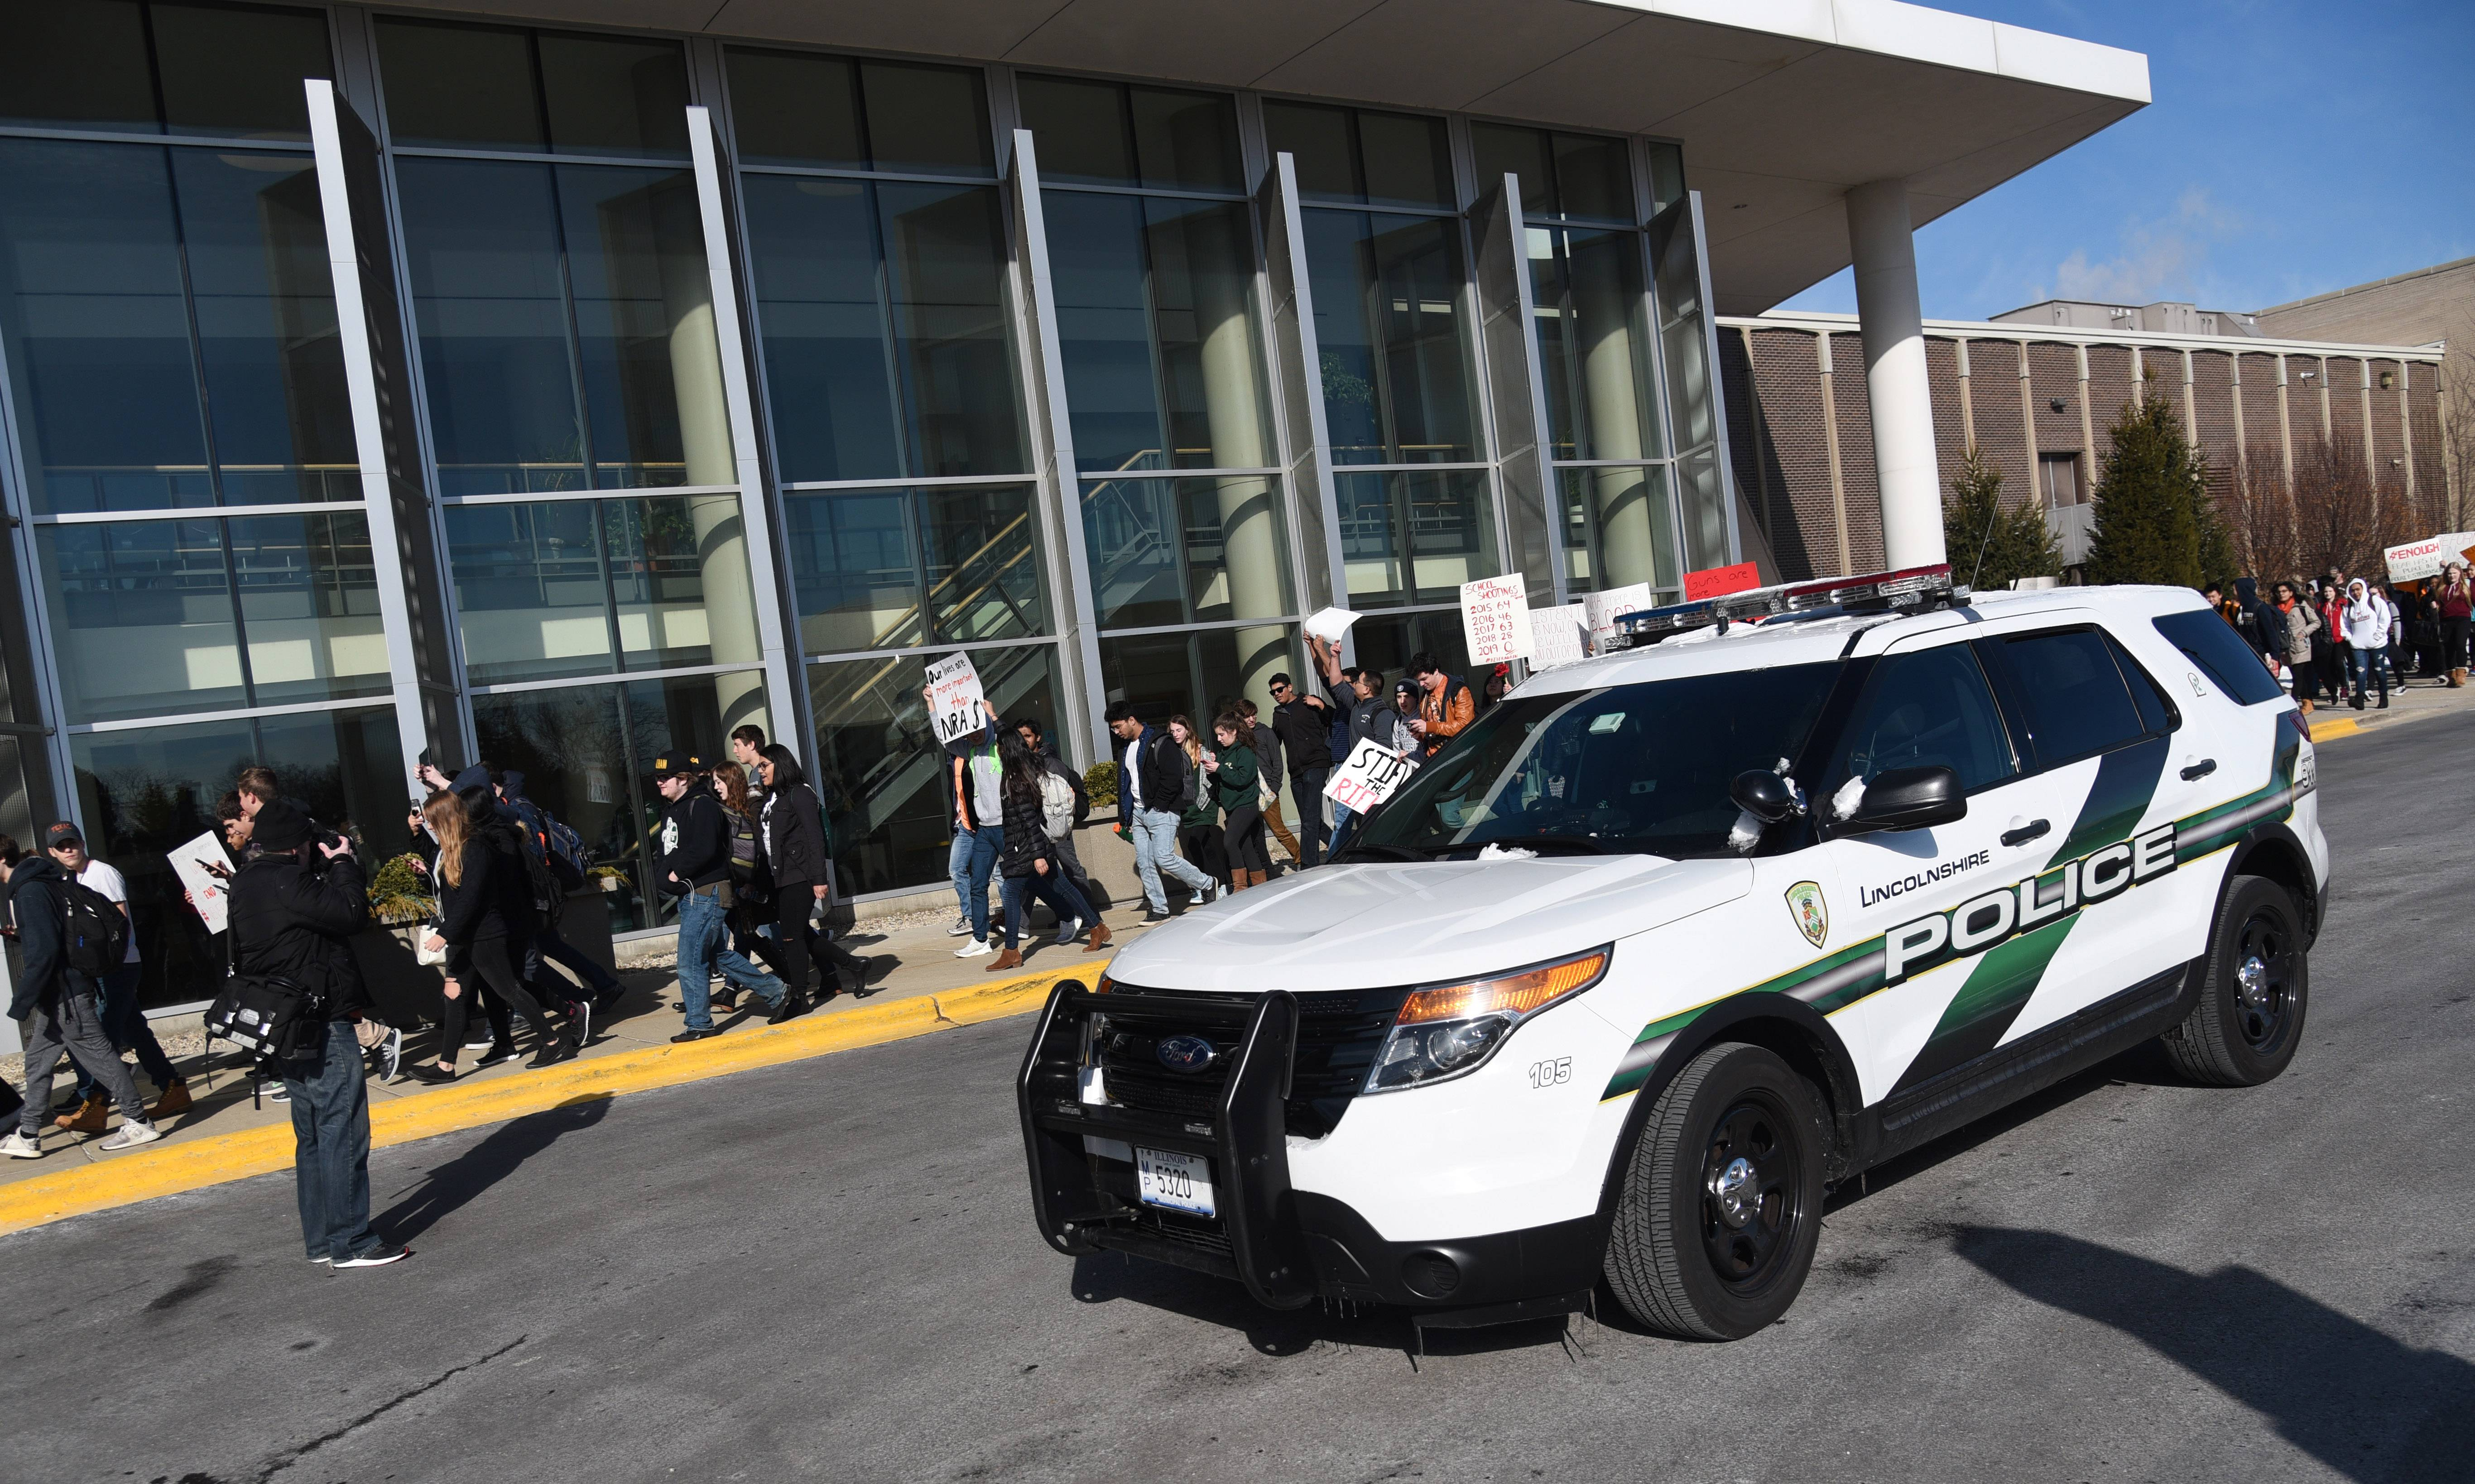 Lincolnshire police officers patrolled the parking lots and blocked entrances to Stevenson High School Wednesday morning as students participated in a walkout against gun violence.